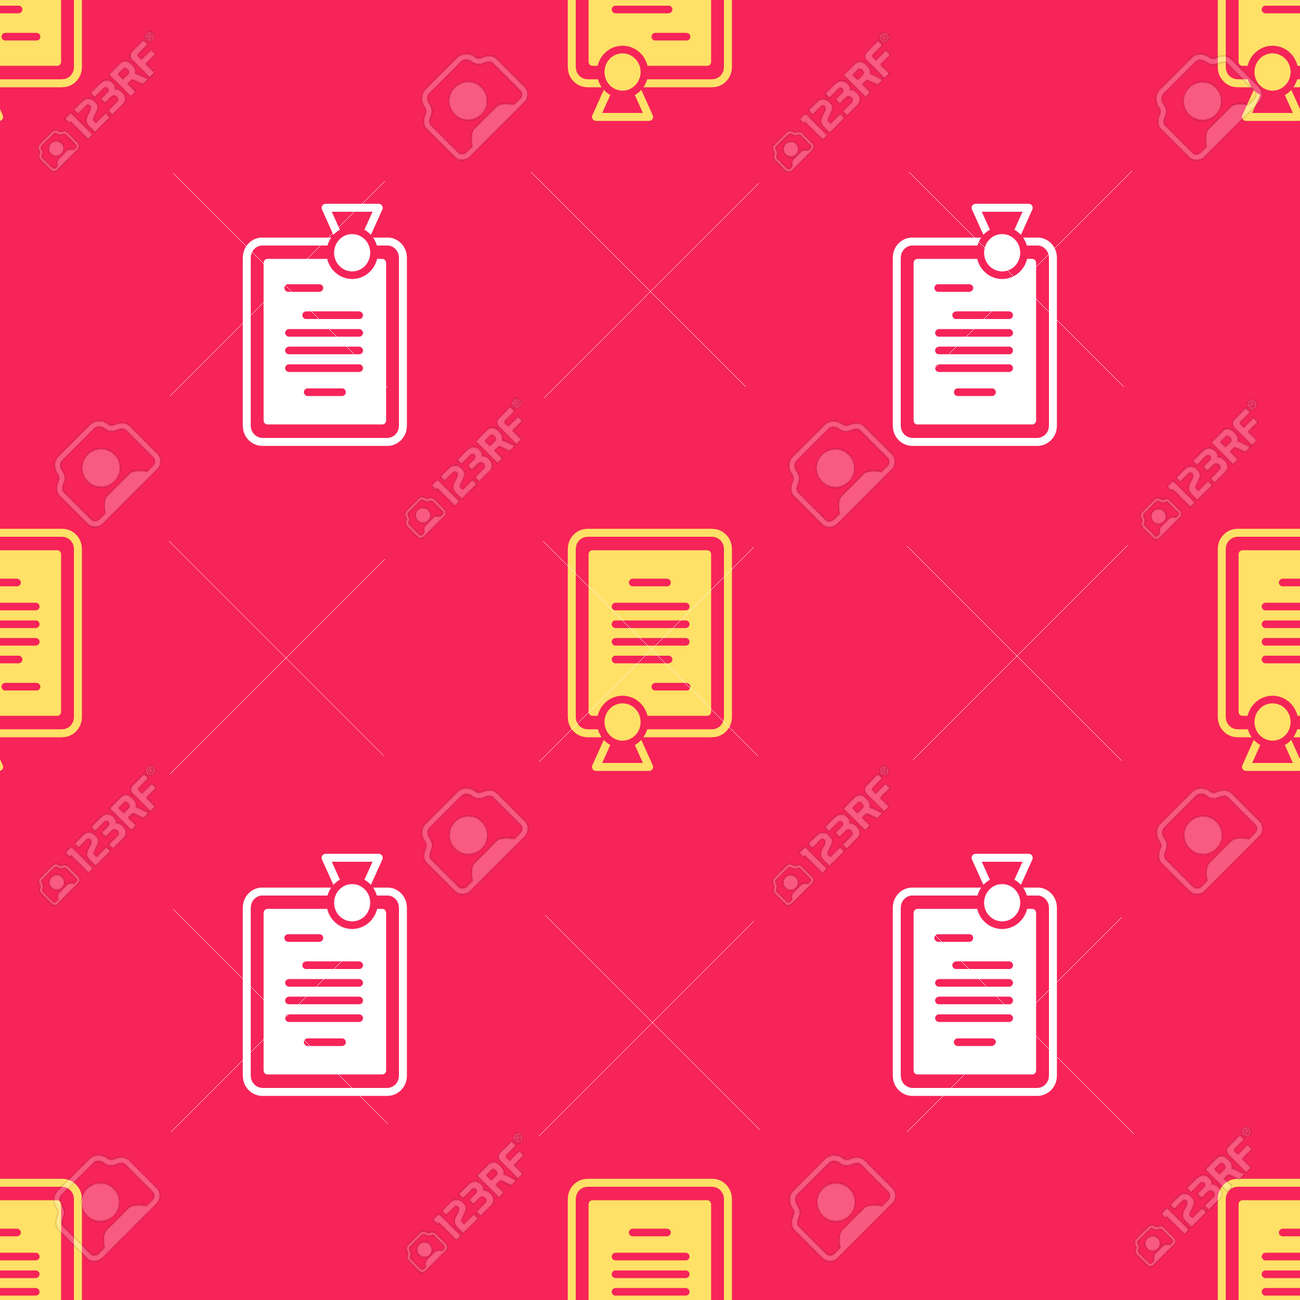 Yellow Certificate template icon isolated seamless pattern on red background. Achievement, award, degree, grant, diploma concepts. Vector - 170180355